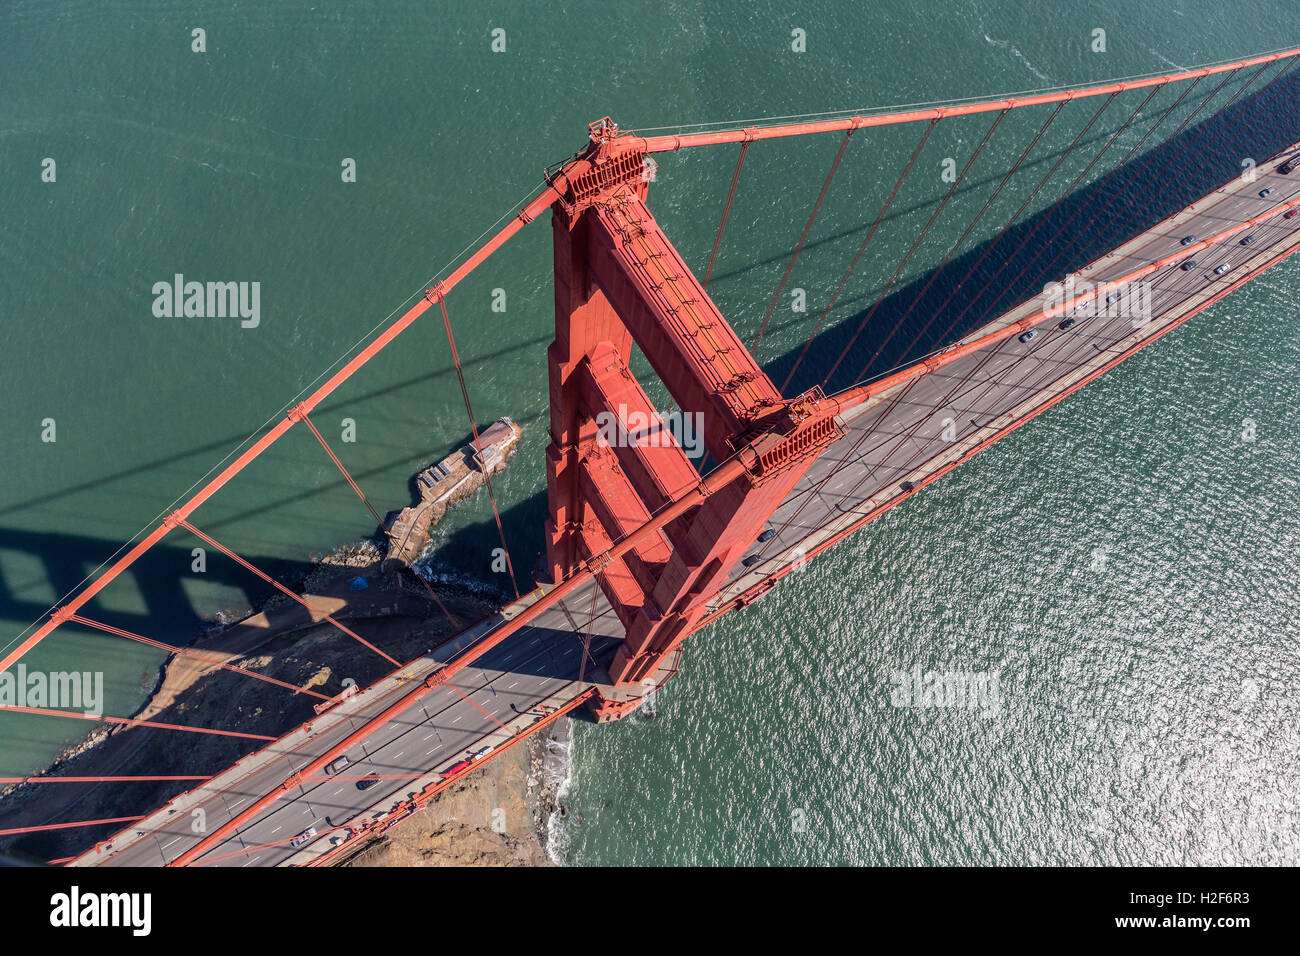 Aerial view of Golden Gate Bridge suspension tower, cable and road above San Francisco Bay in California. - Stock Image